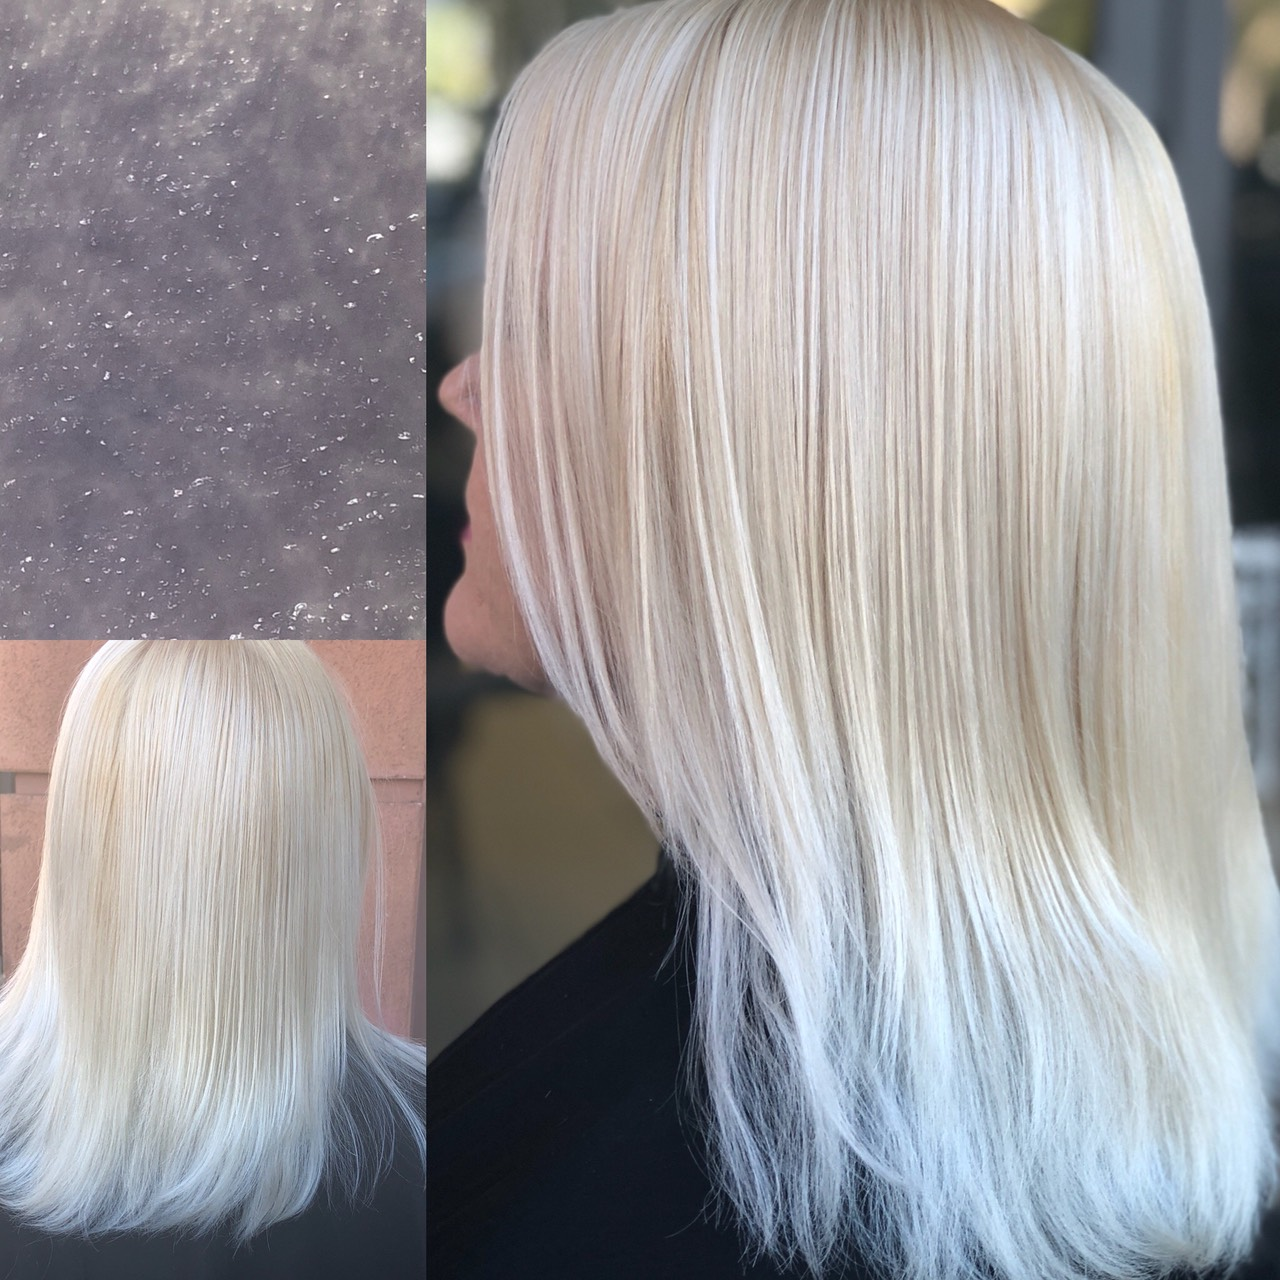 Blonde Hair Color Specialist Hair Colorist Martin Rodriguez 2018